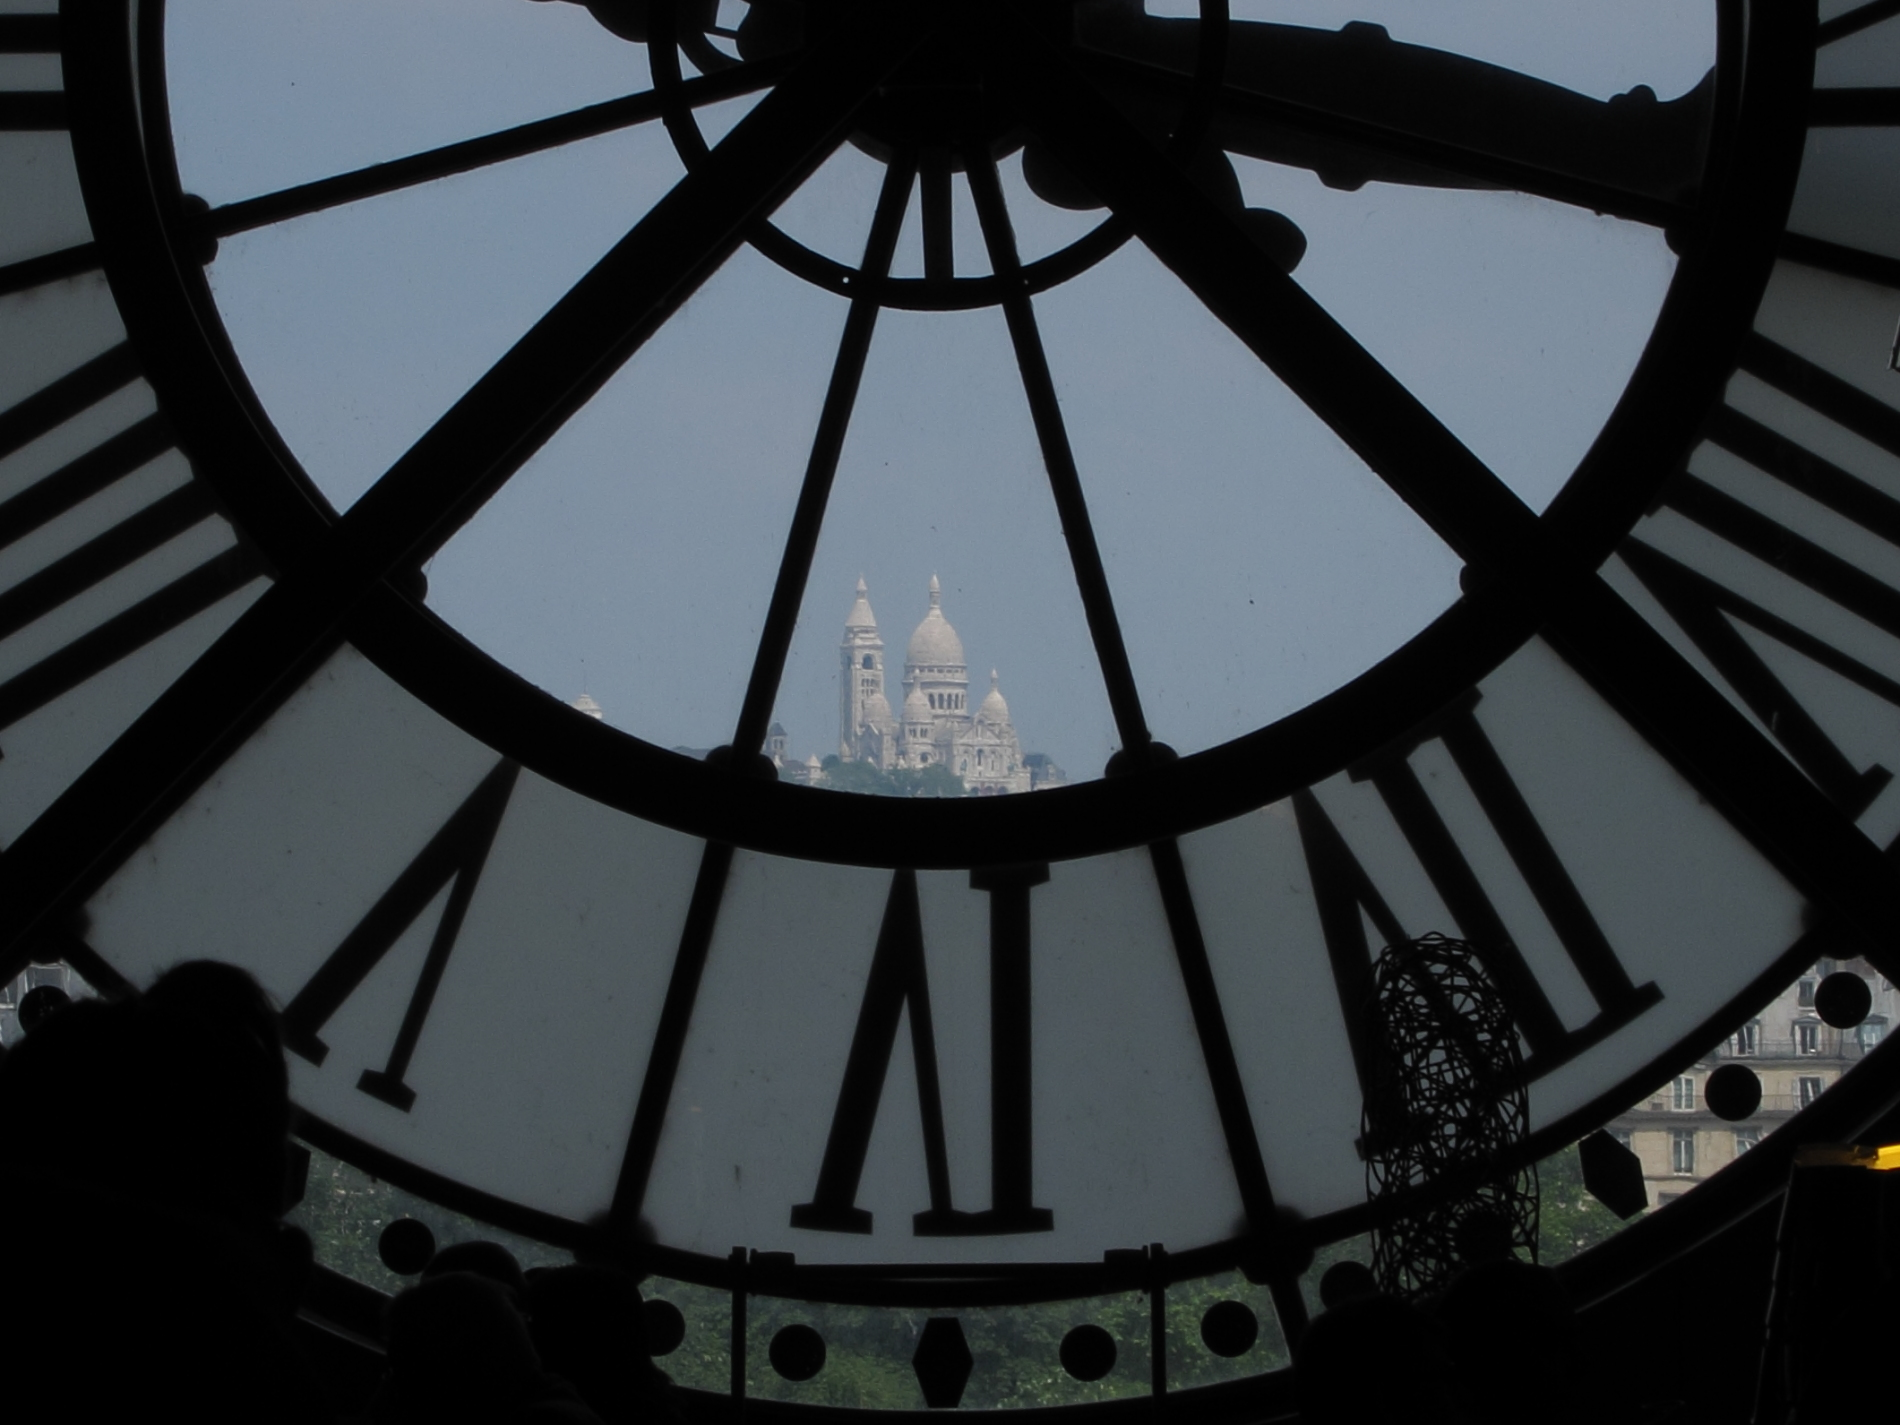 A favorite glimpse of Sacré Coeur from the café of the Musée d'Orsay.